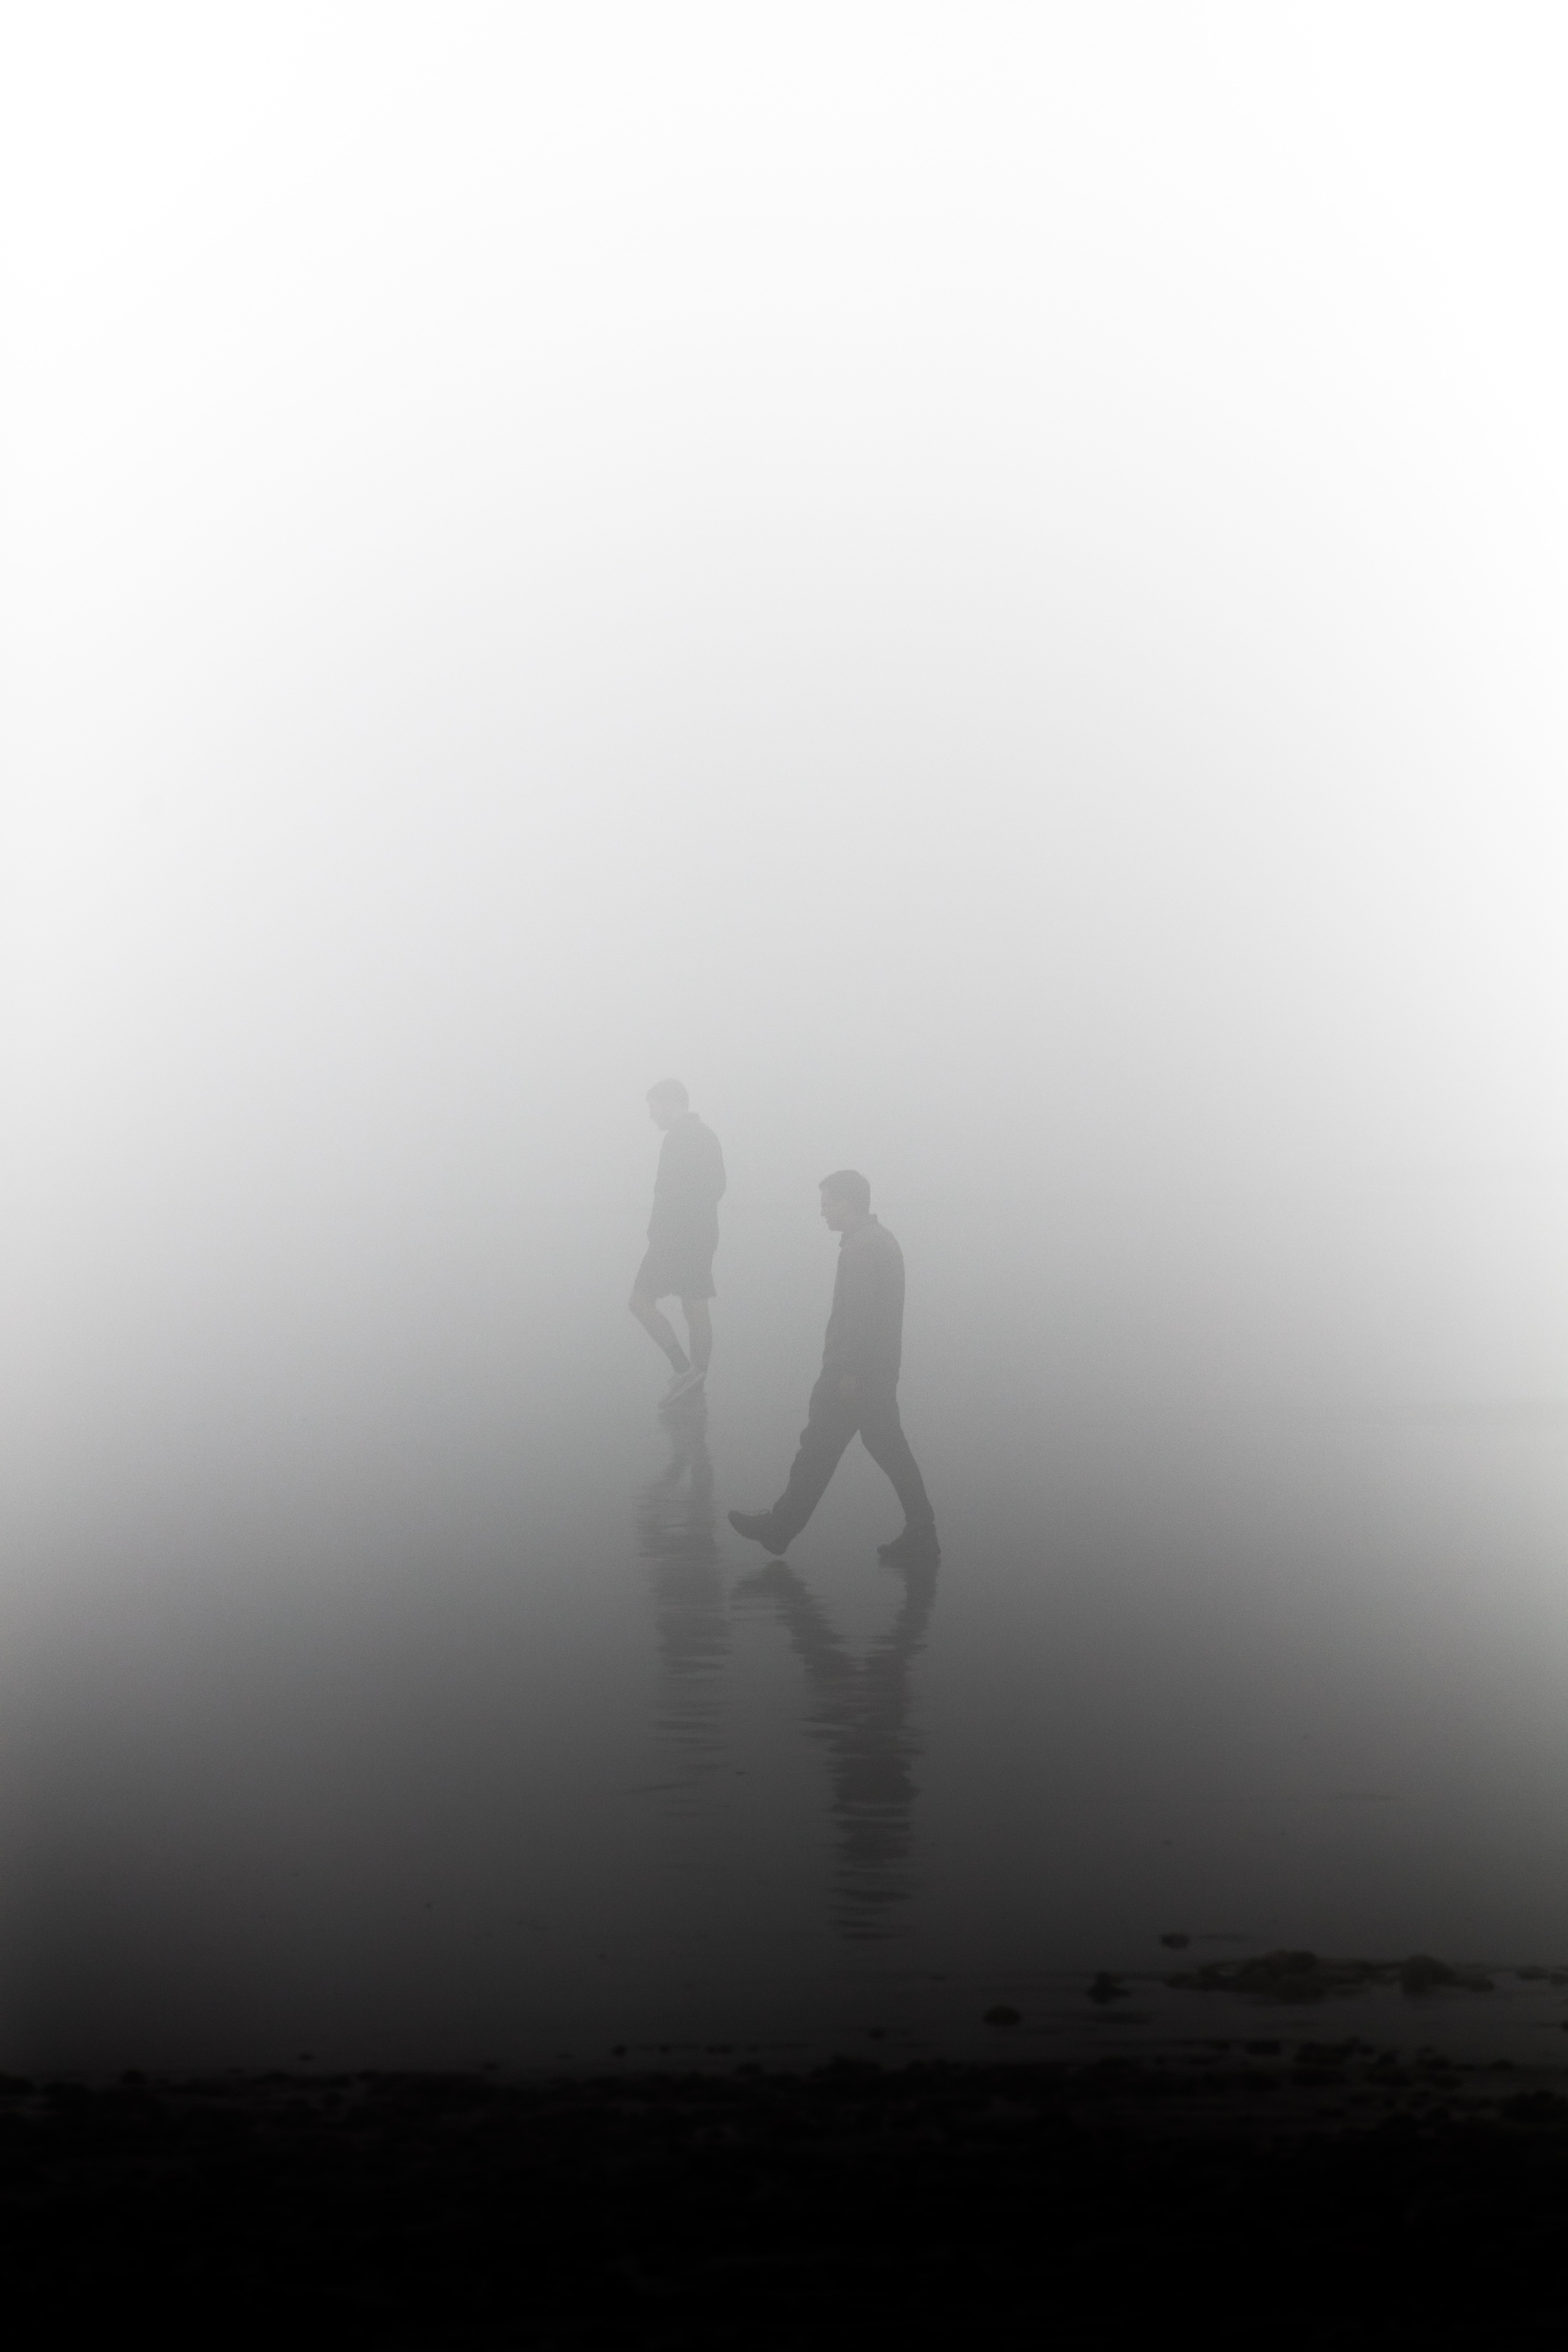 silhouette of man during foggy day